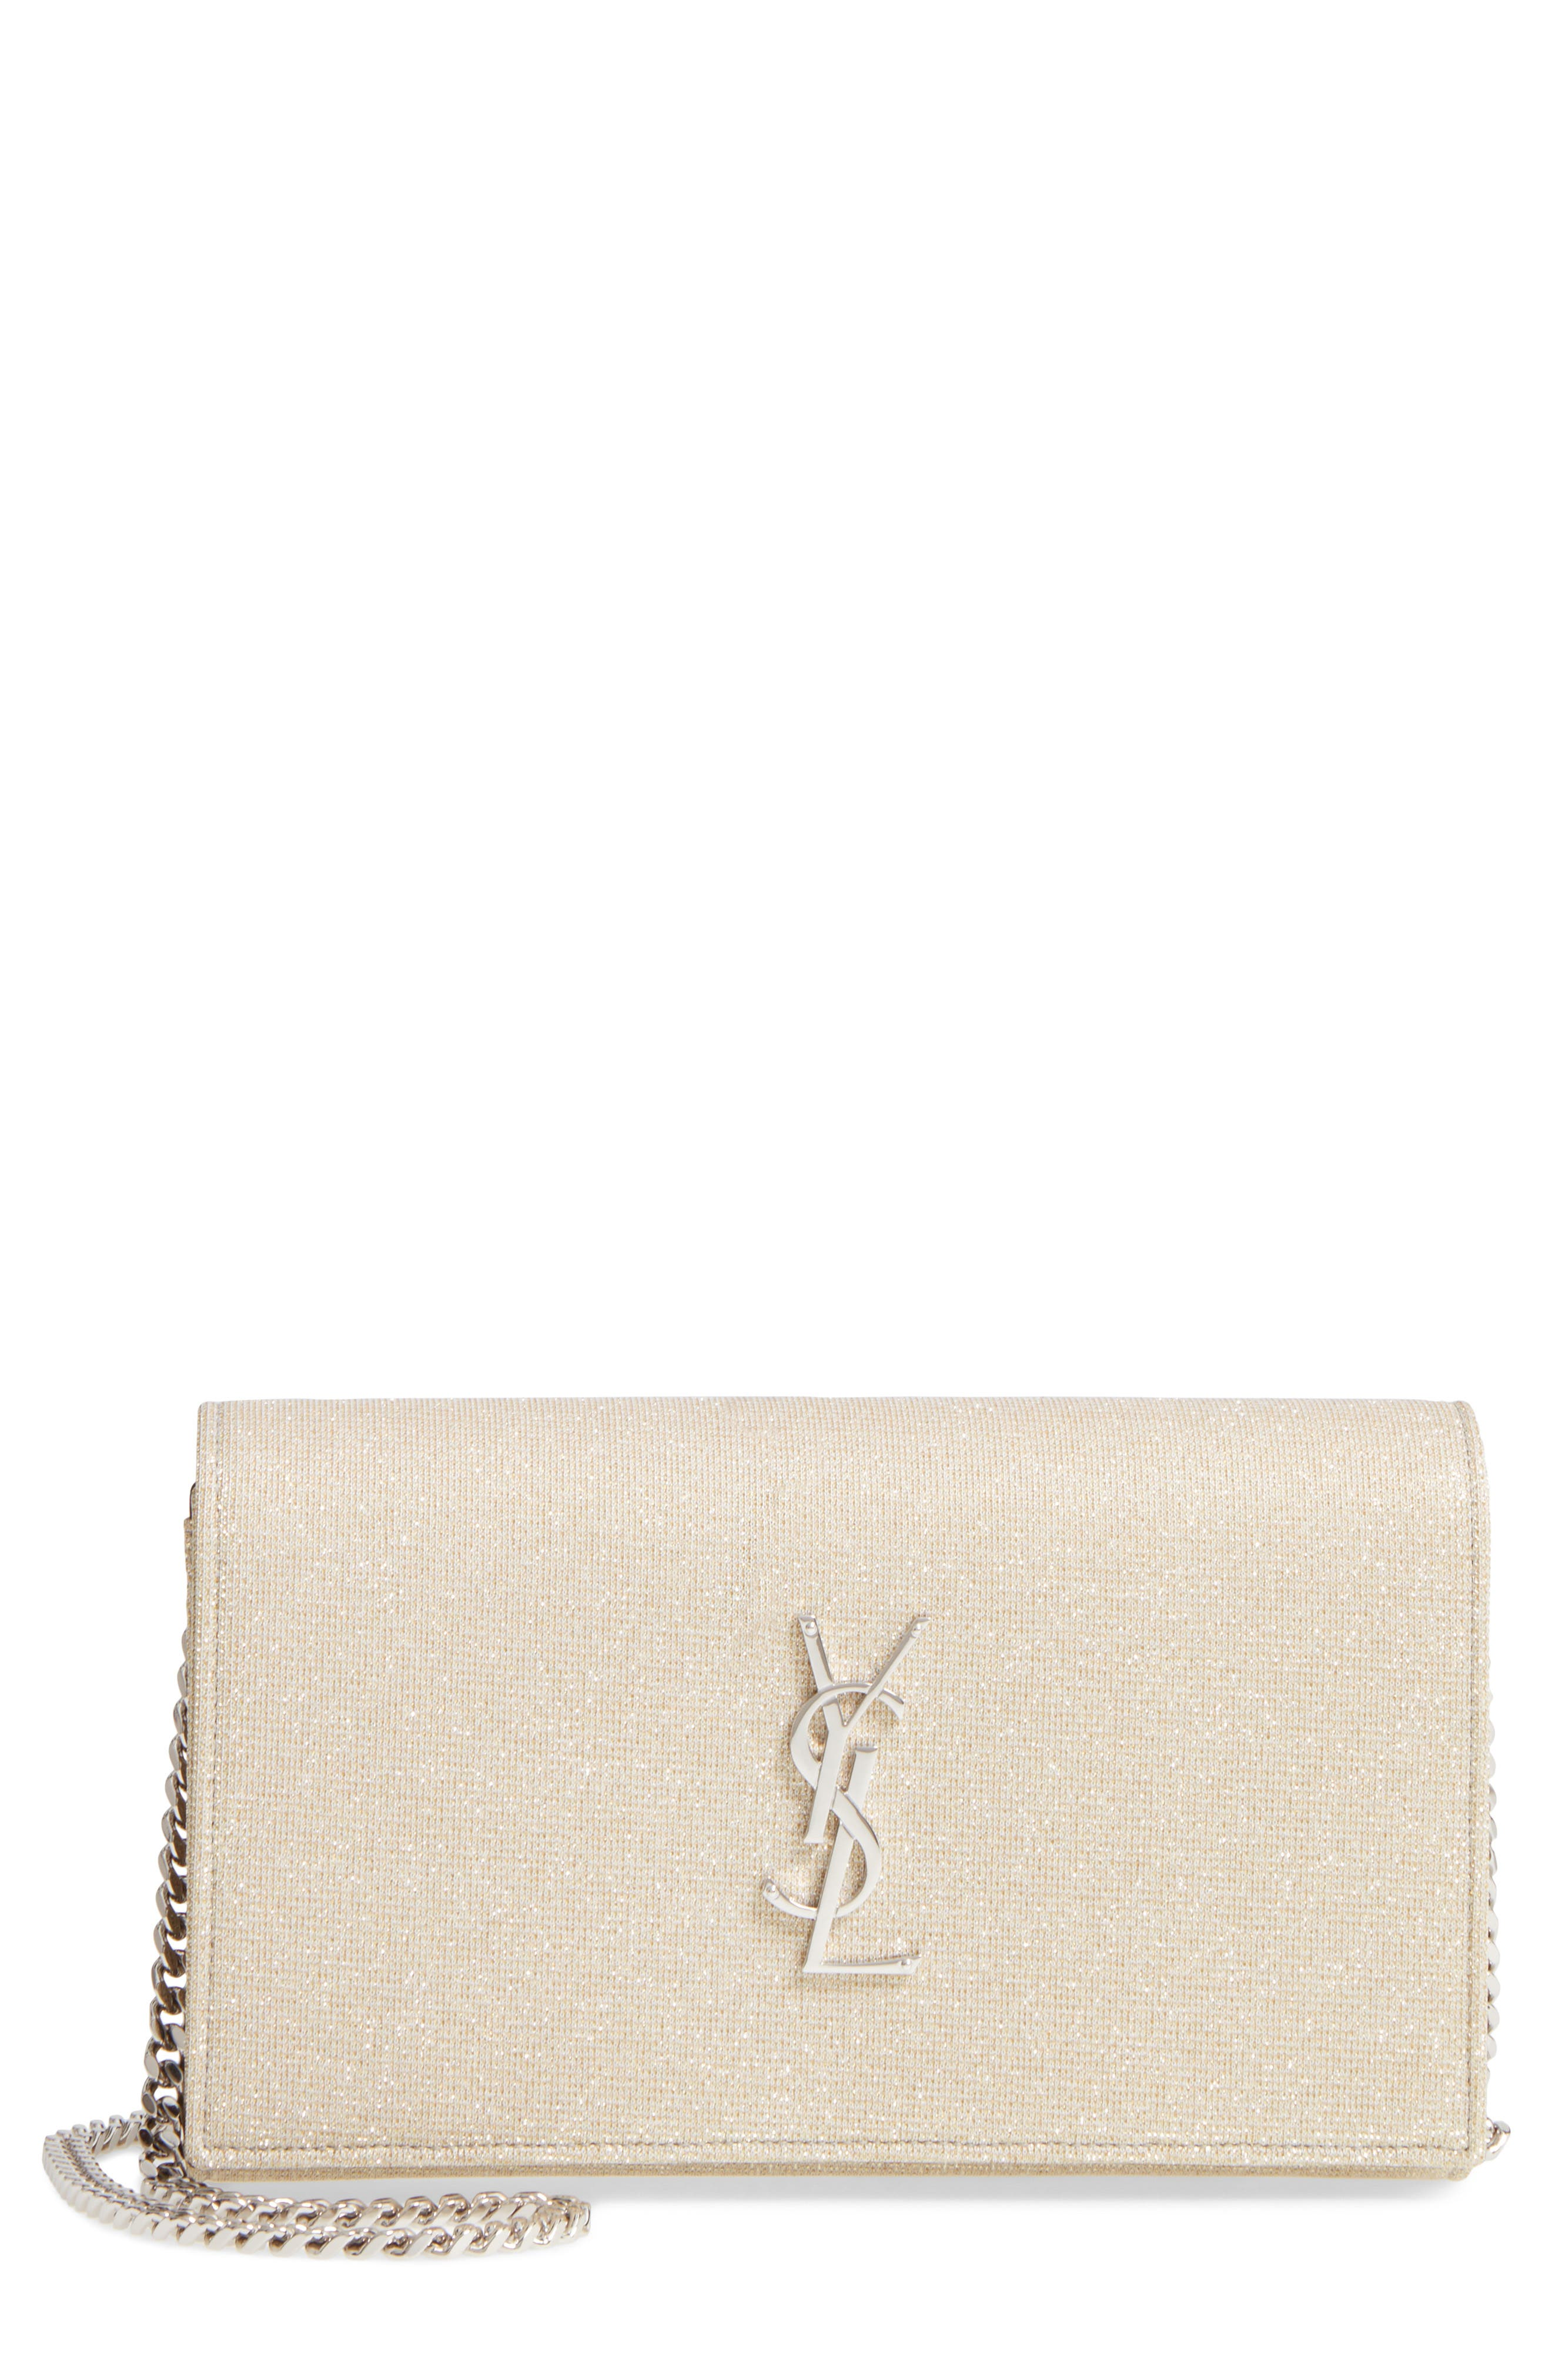 Alternate Image 1 Selected - Saint Laurent Monogramme Metallic Wallet on a Chain